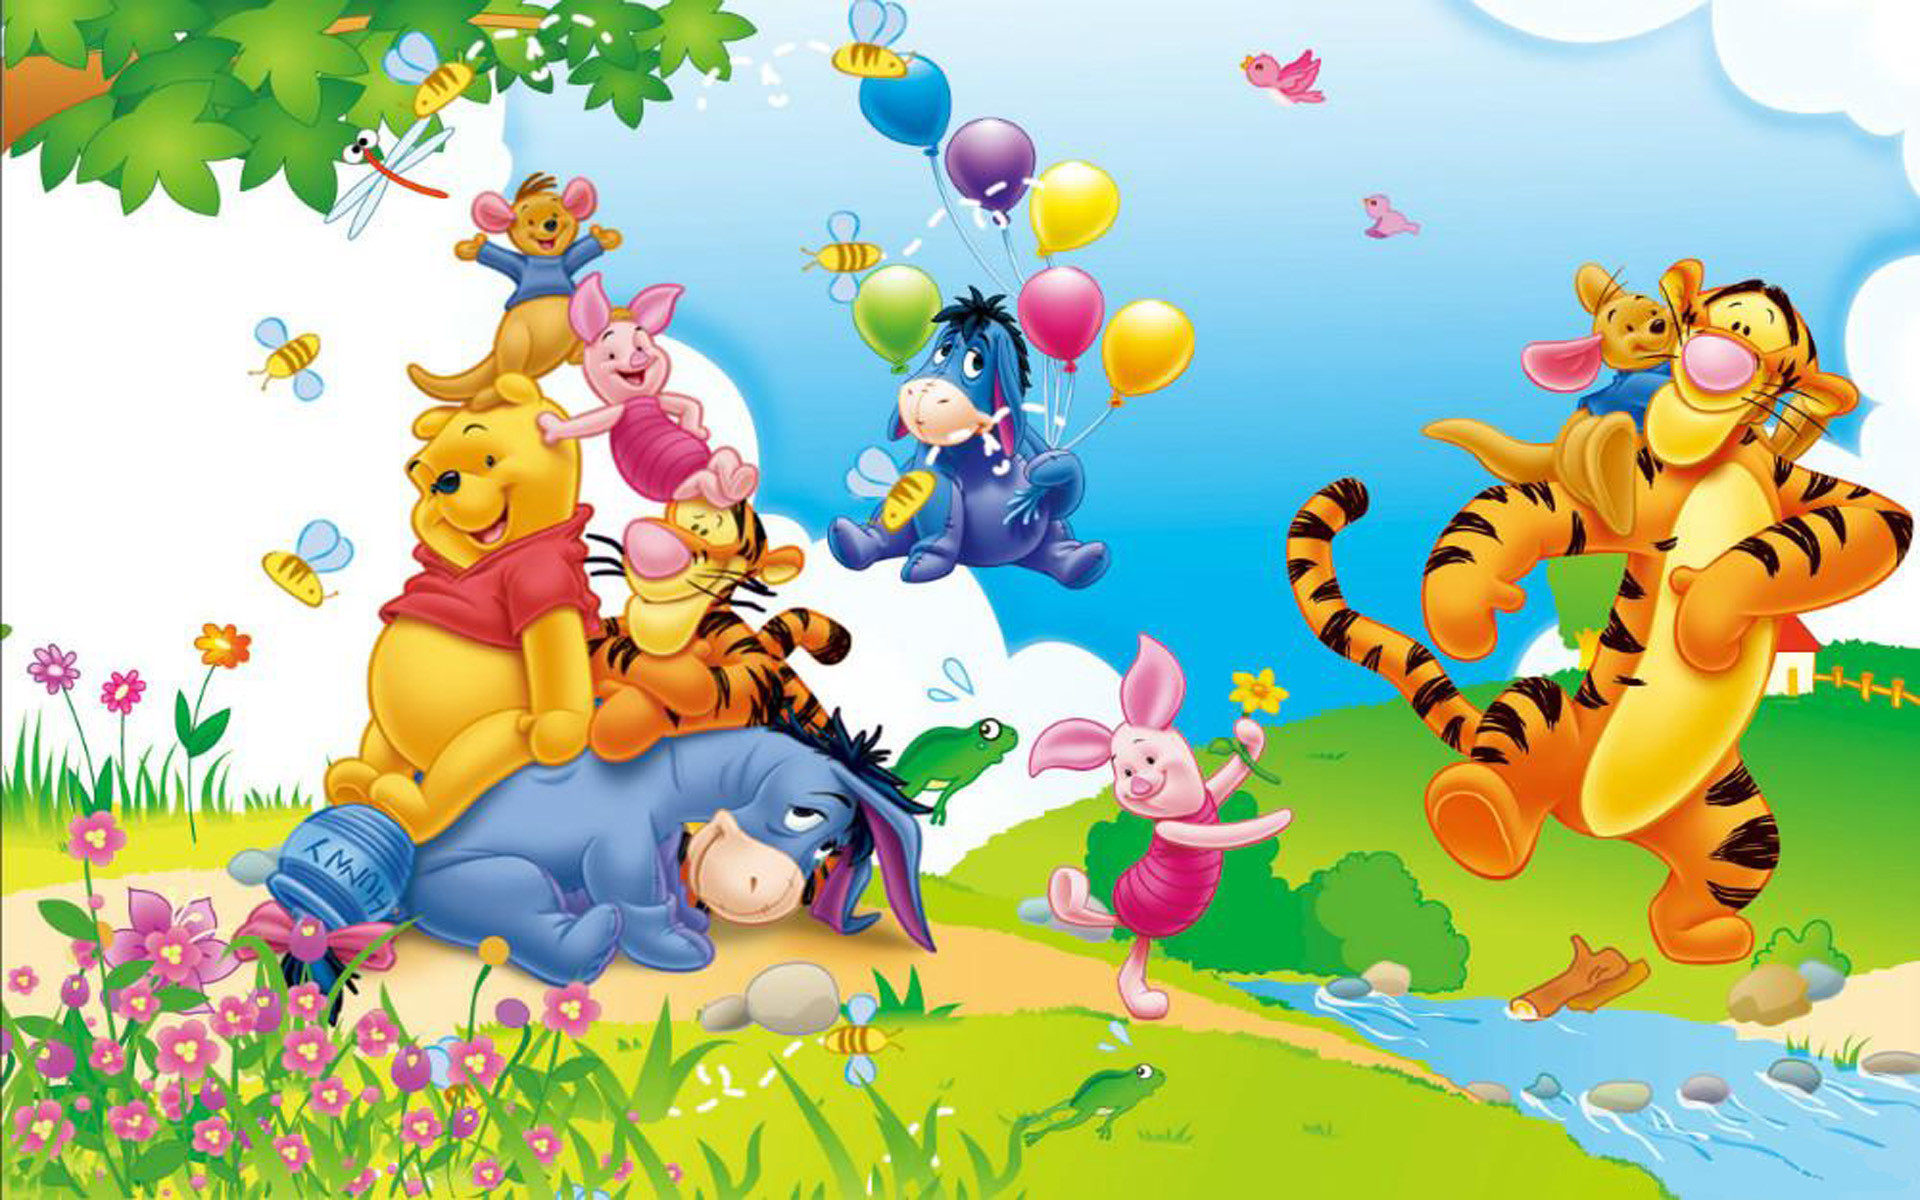 1920x1200 1920x1440 winnie pooh wallpaper quotes wallpaper simplepict com pooh bear  wallpapers 64 images .